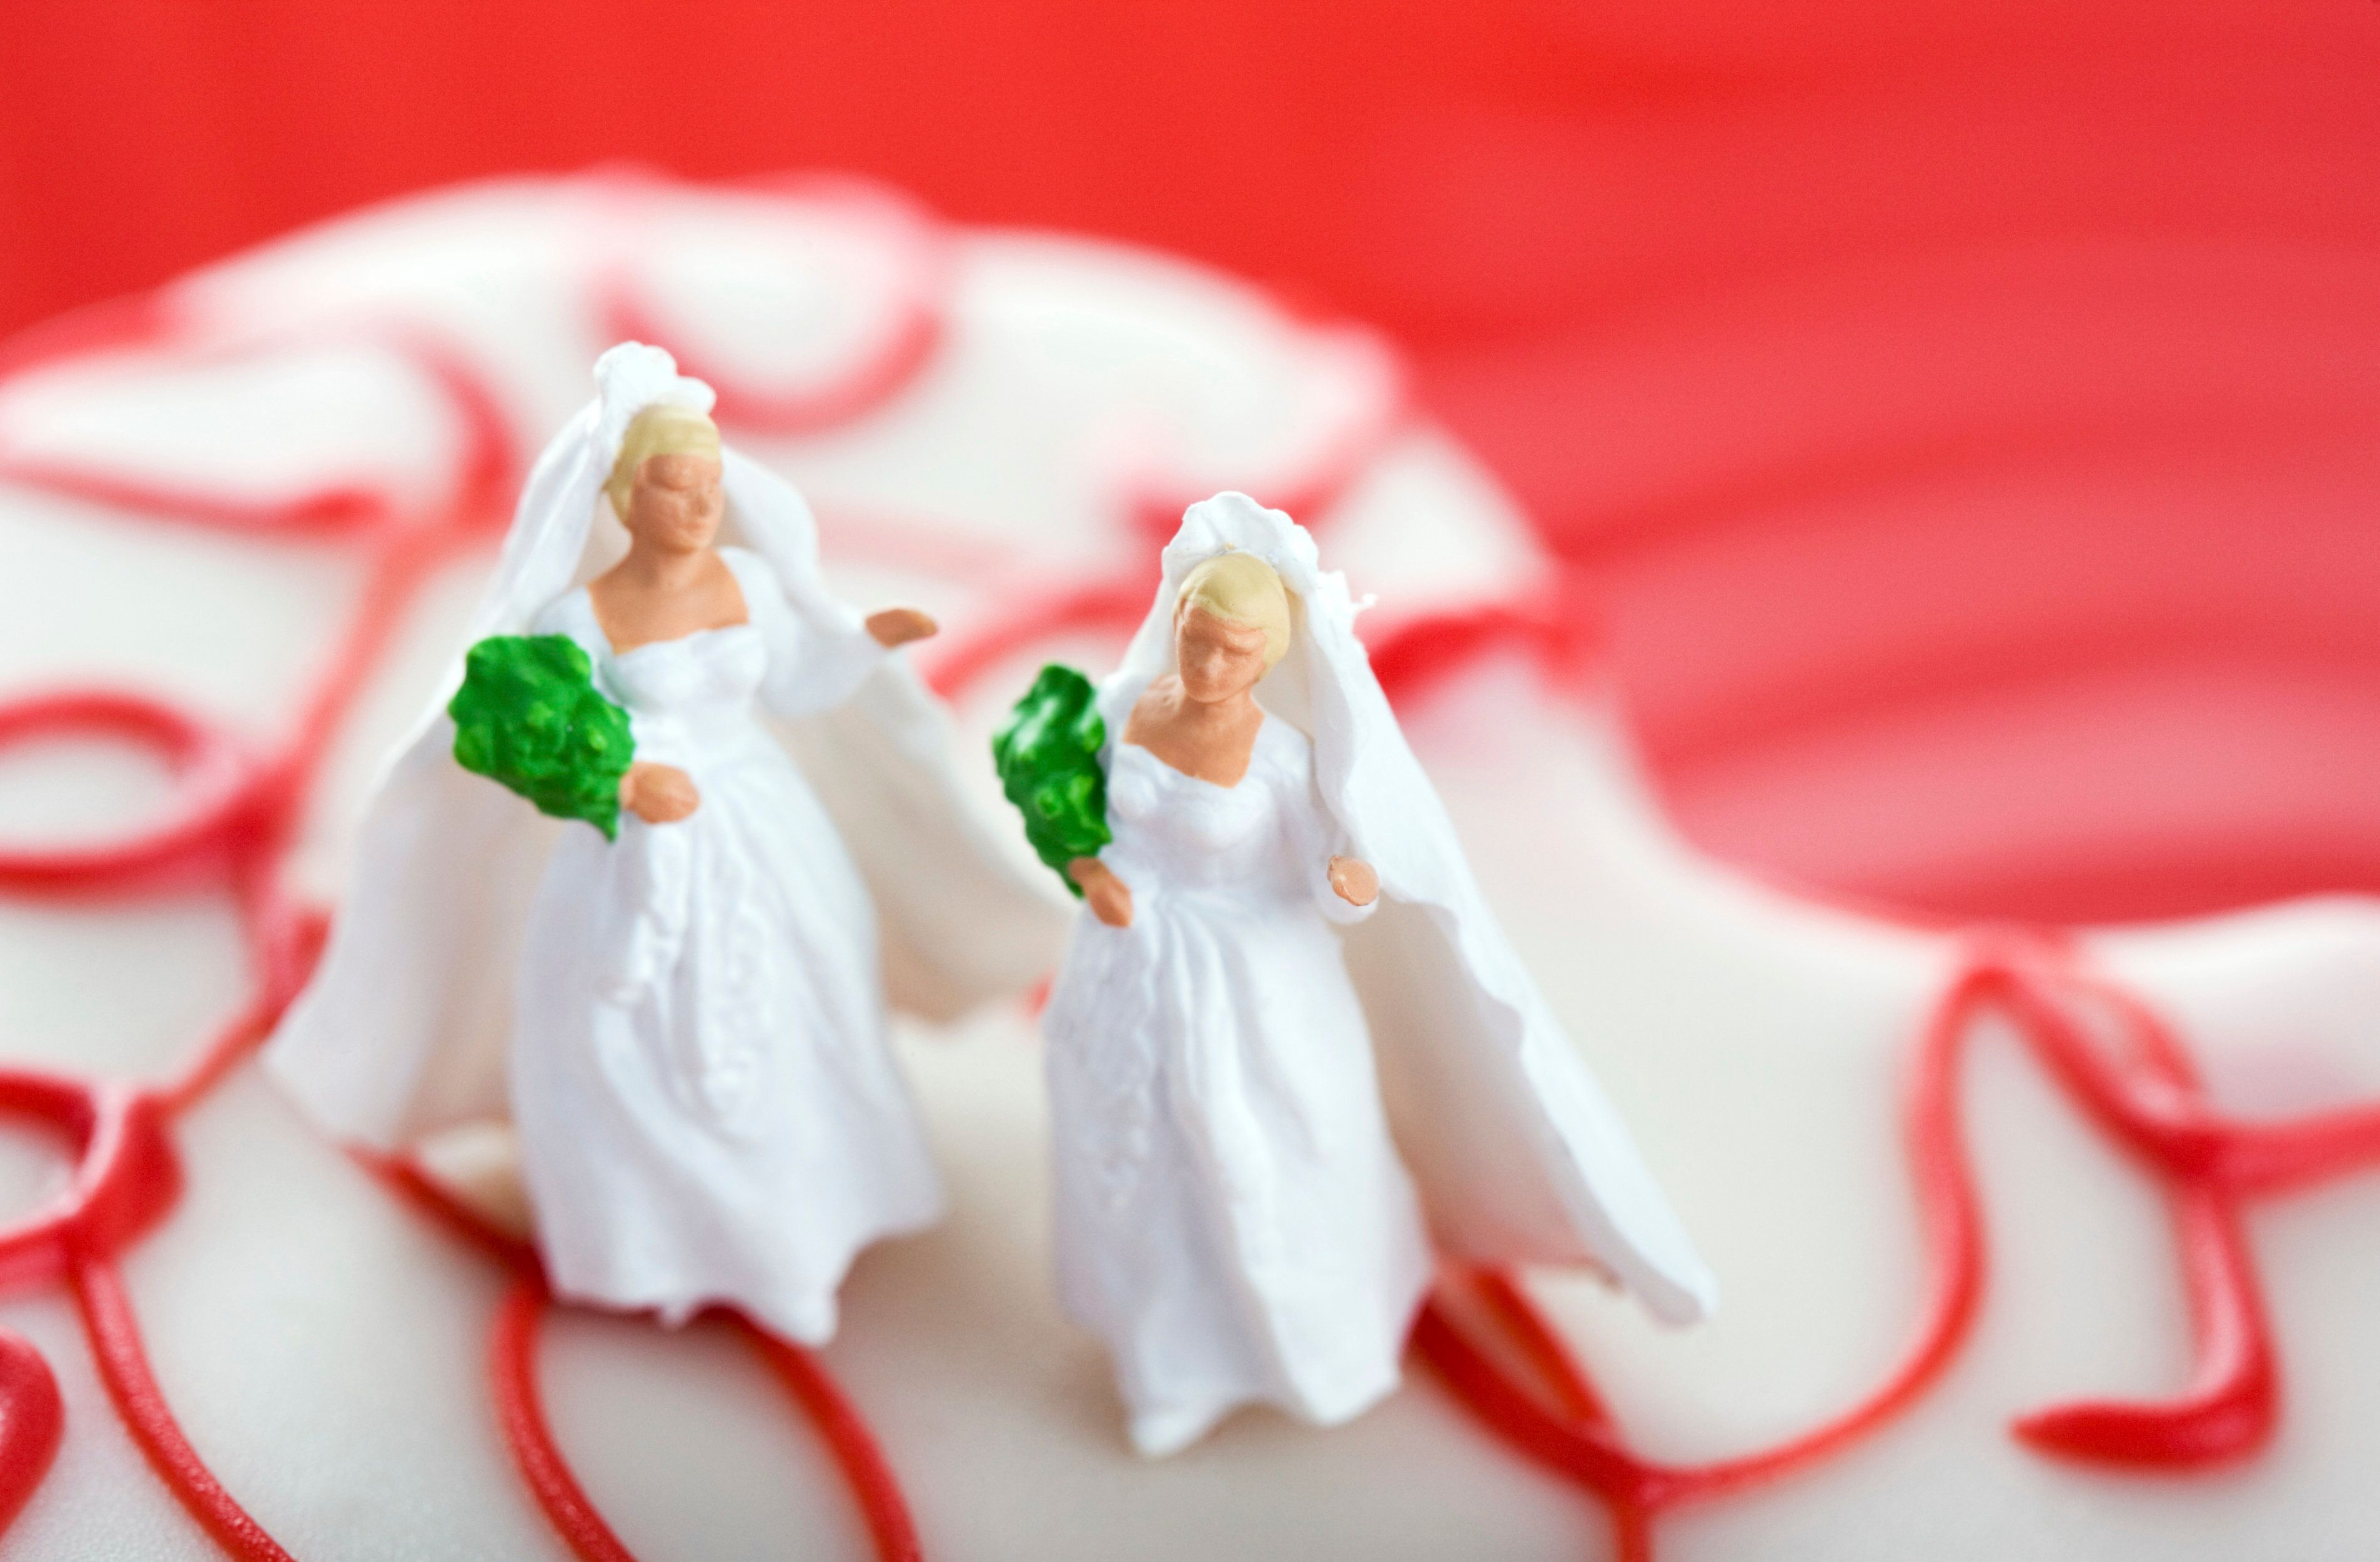 Tiny wedding figures atop a small heart-shaped pastry. These figures are extremely small, about half an inch tall. Very conceptual; Extremely shallow depth of field, focus on right bride.